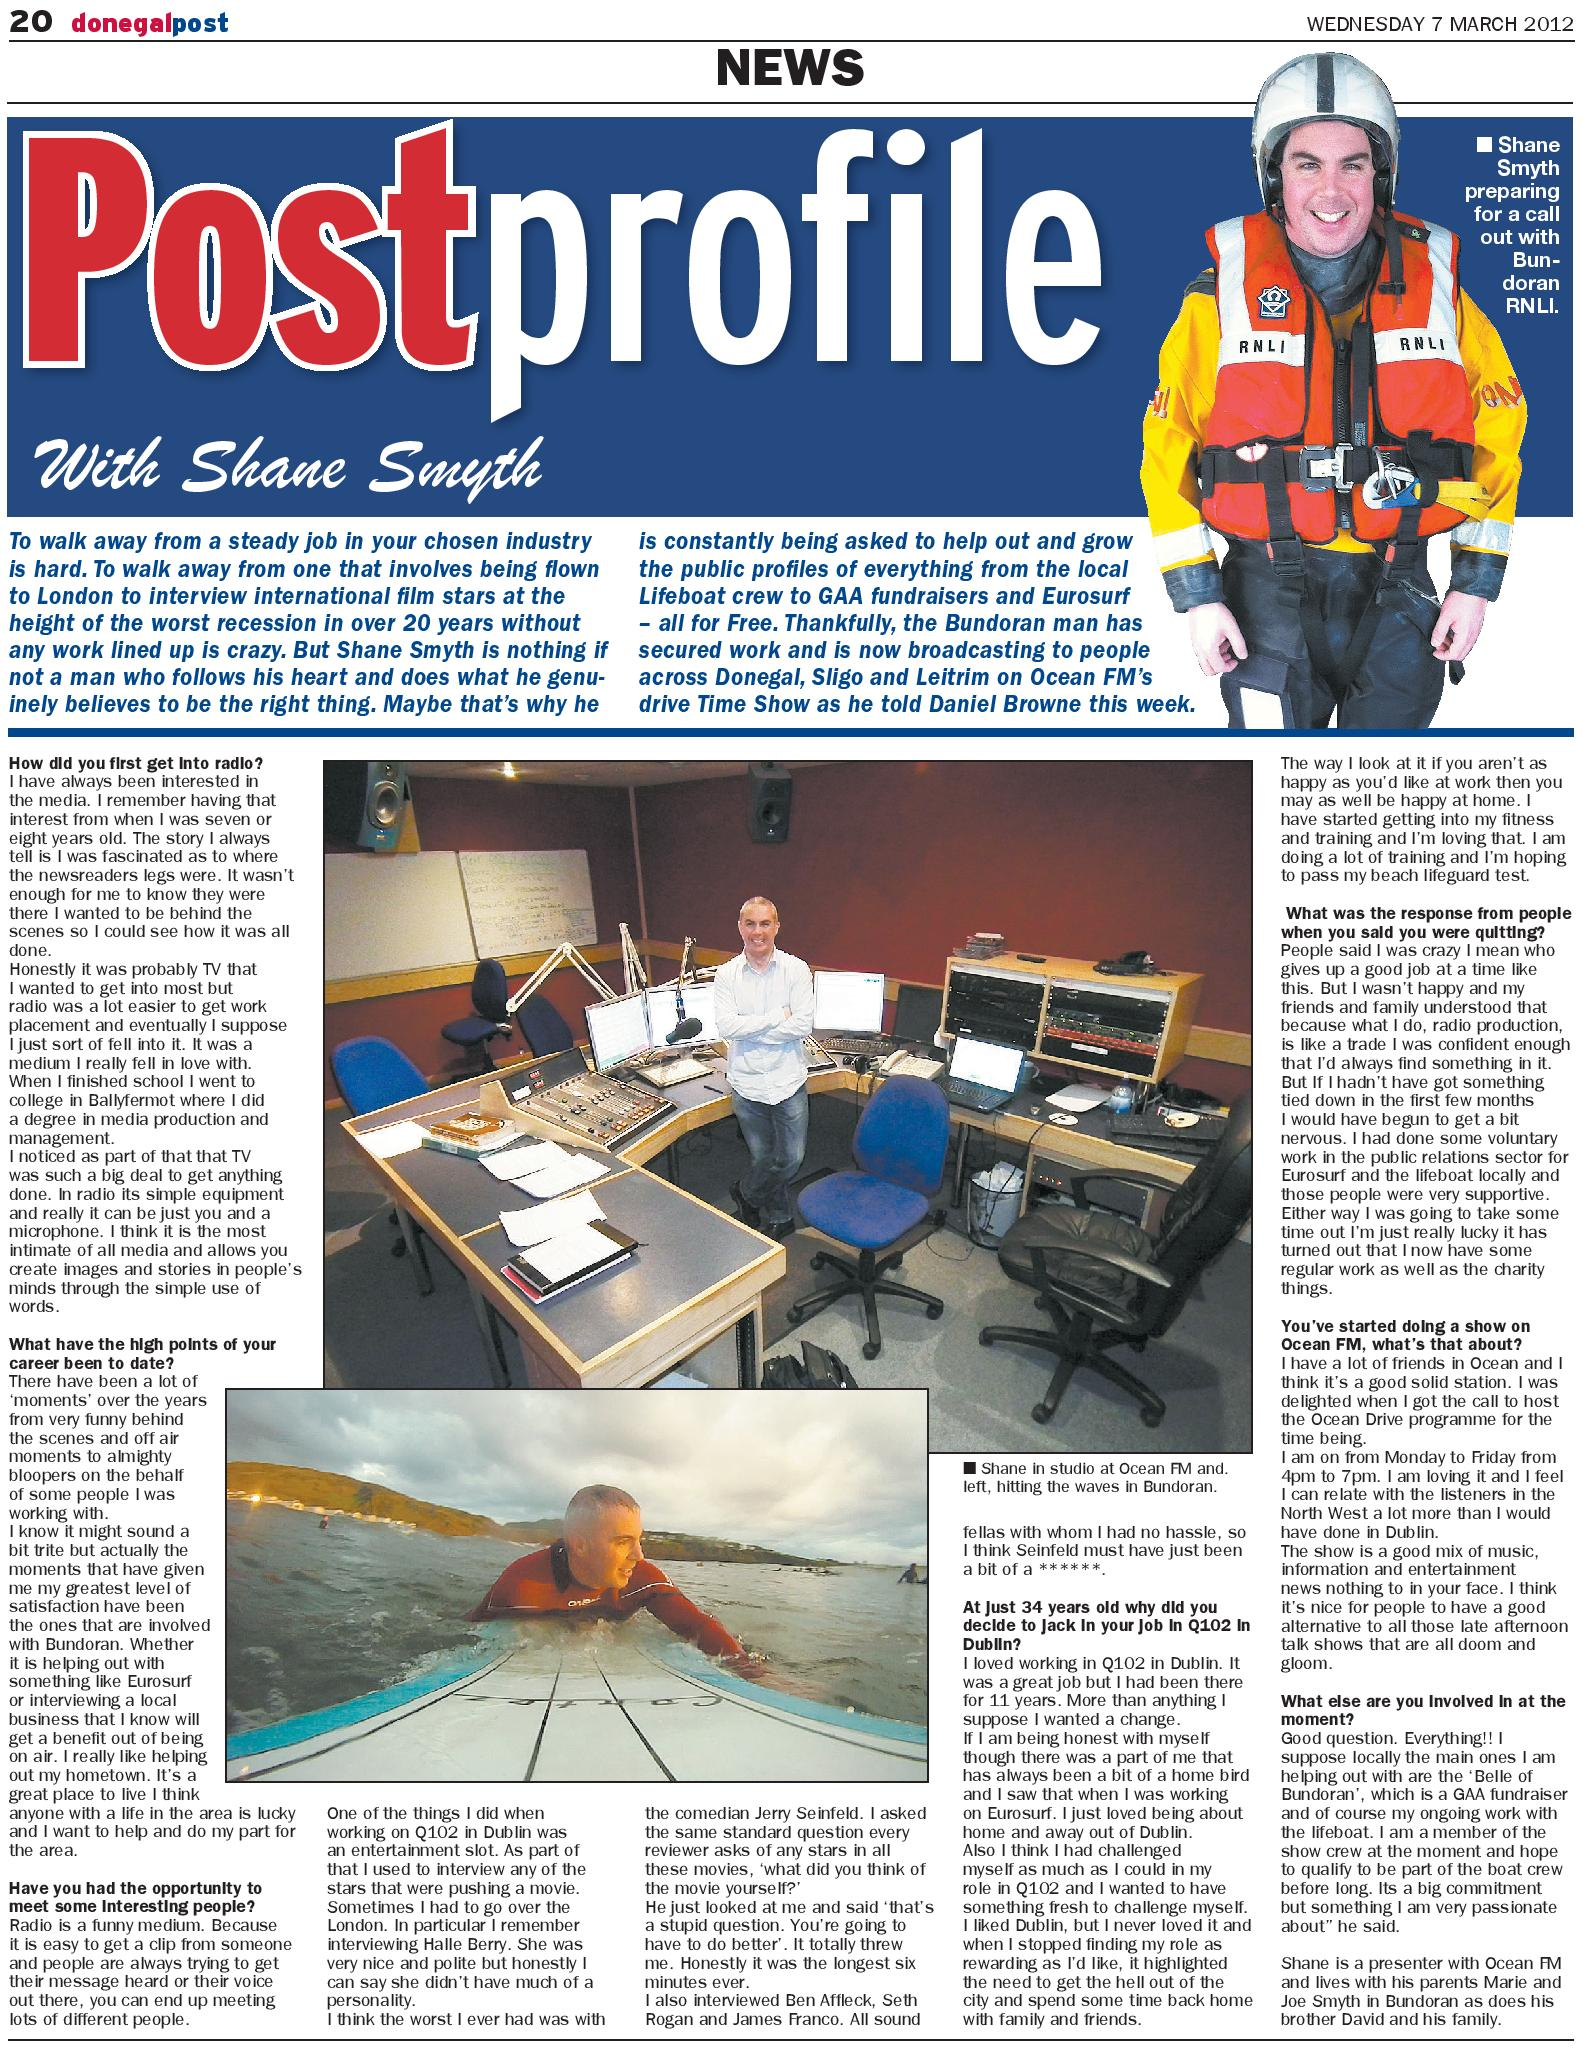 shane-donegal-post-profile-070212-page-001